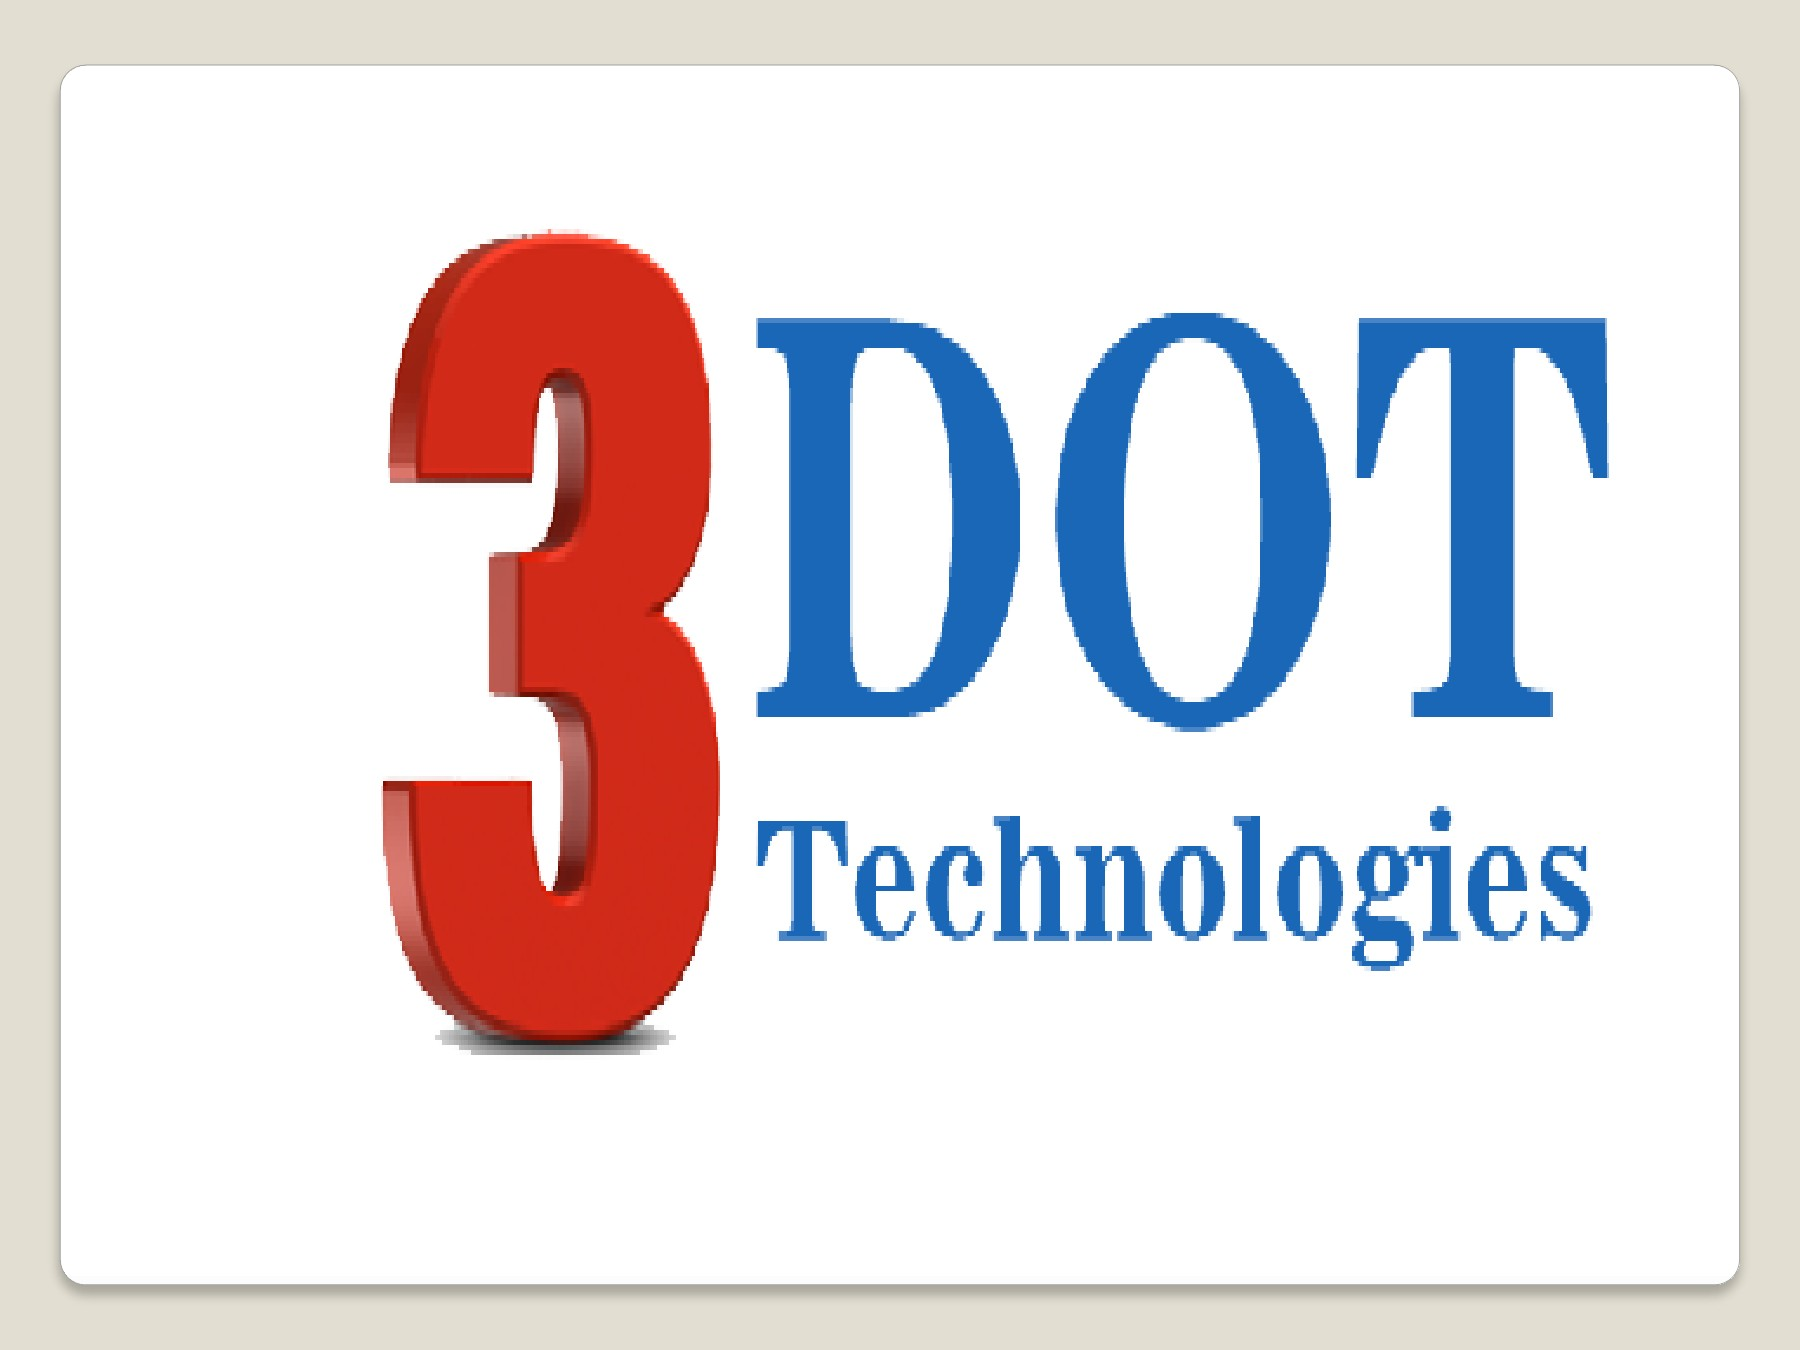 Web Designing Courses In Pune Web Designing Classes In Pune 3dot Technologies Pages 1 11 Text Version Anyflip